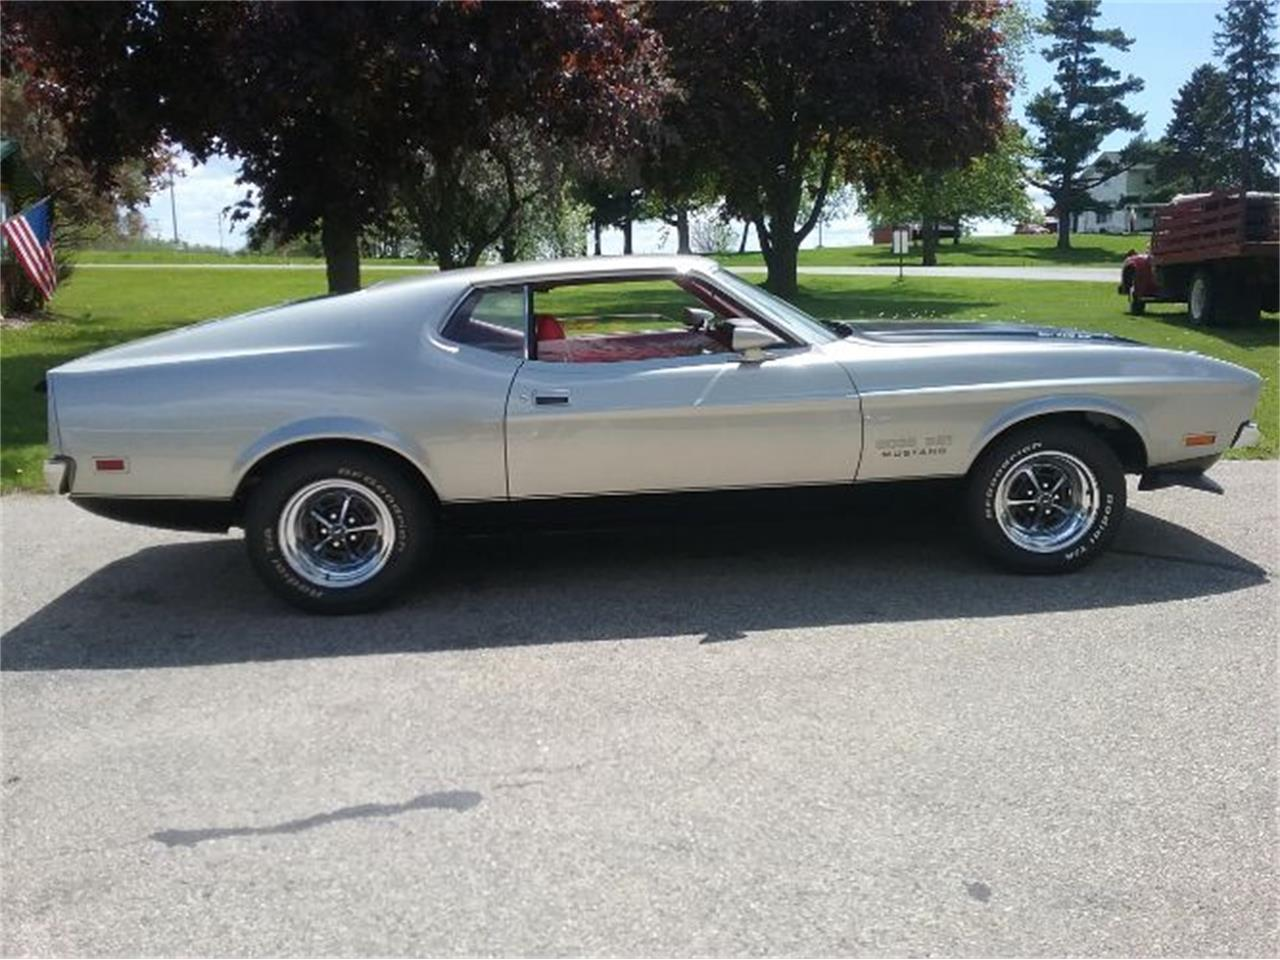 For Sale: 1971 Ford Mustang in Cadillac, Michigan